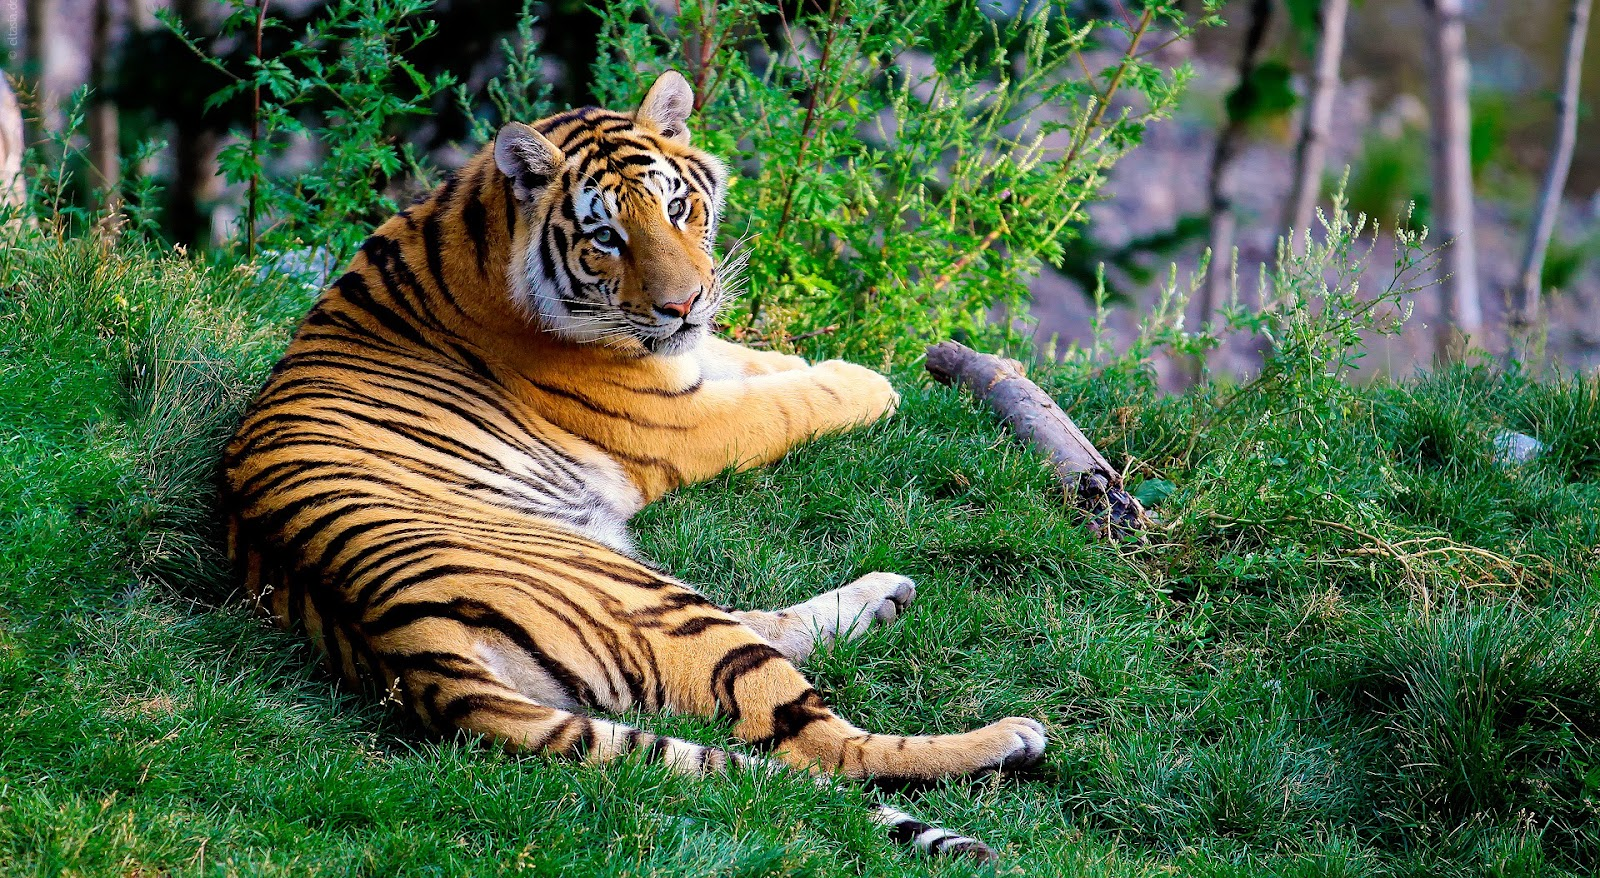 Beautiful 1080p hd tiger wallpaper hd wallpapers images - Tiger hd wallpaper for pc ...